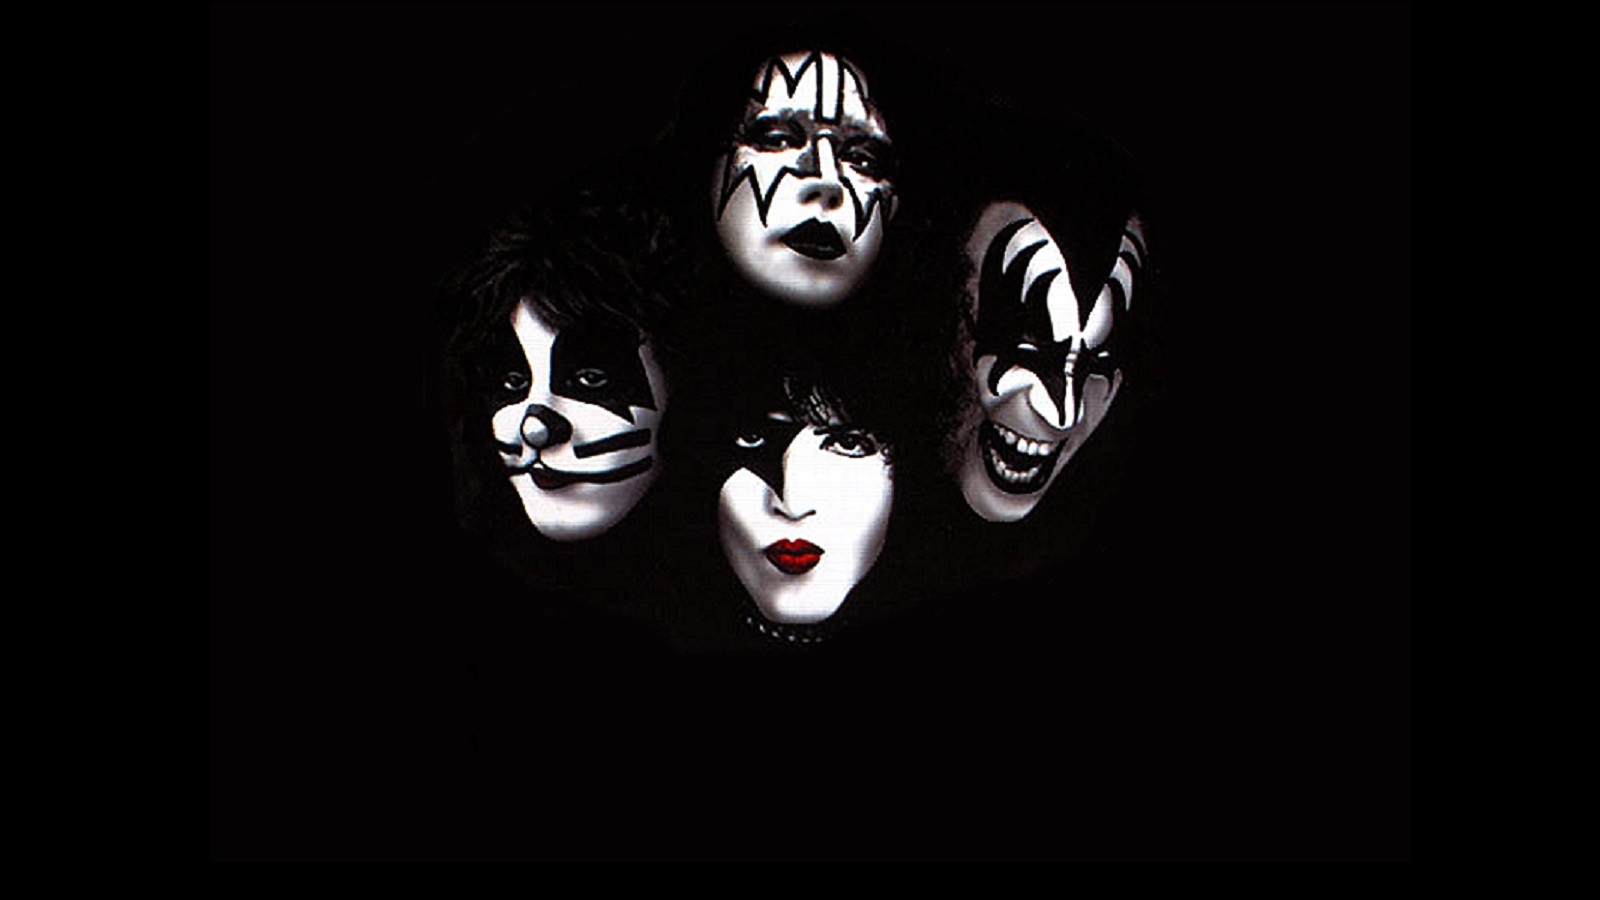 KISS Computer Wallpapers Desktop Backgrounds 1600x900 1600x900